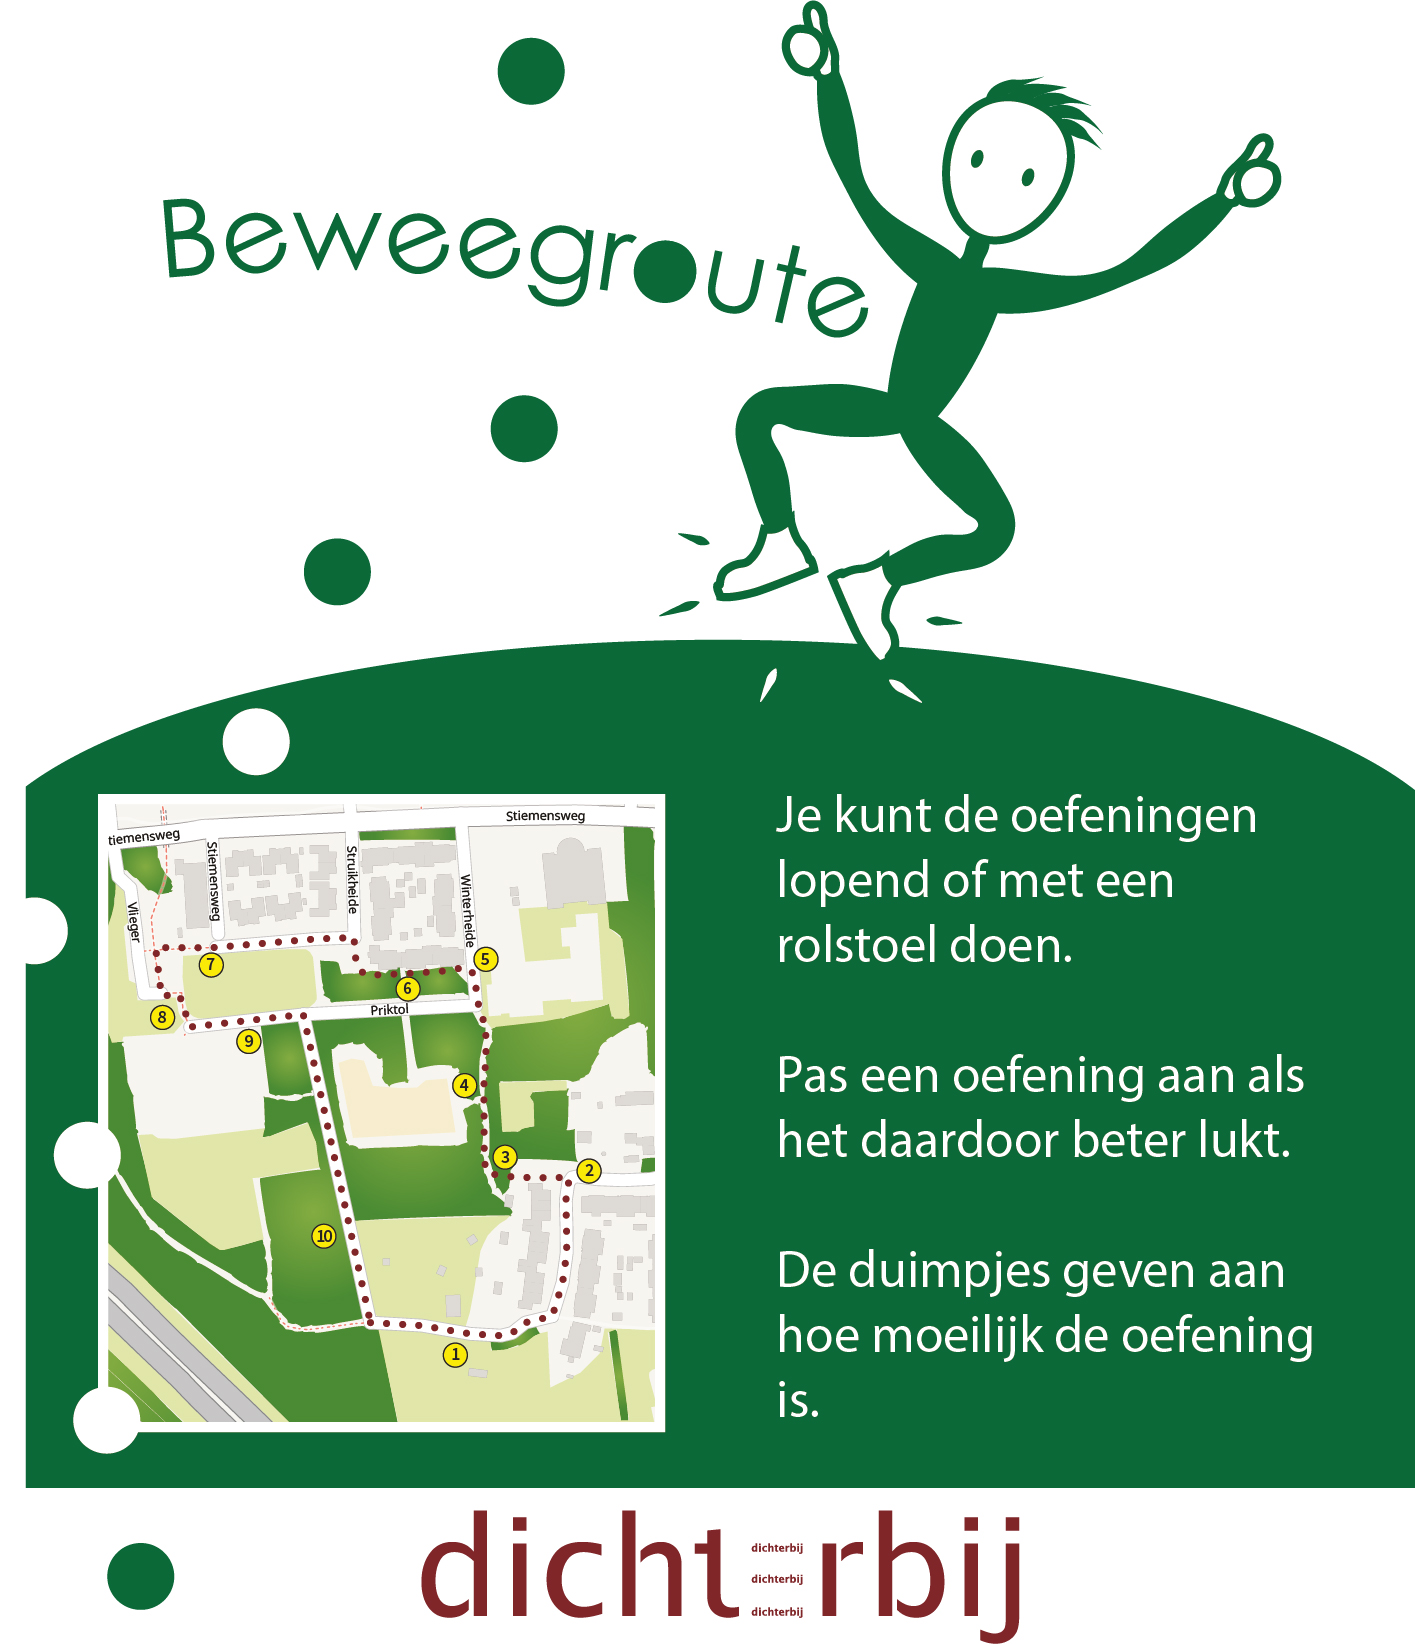 beweegroute